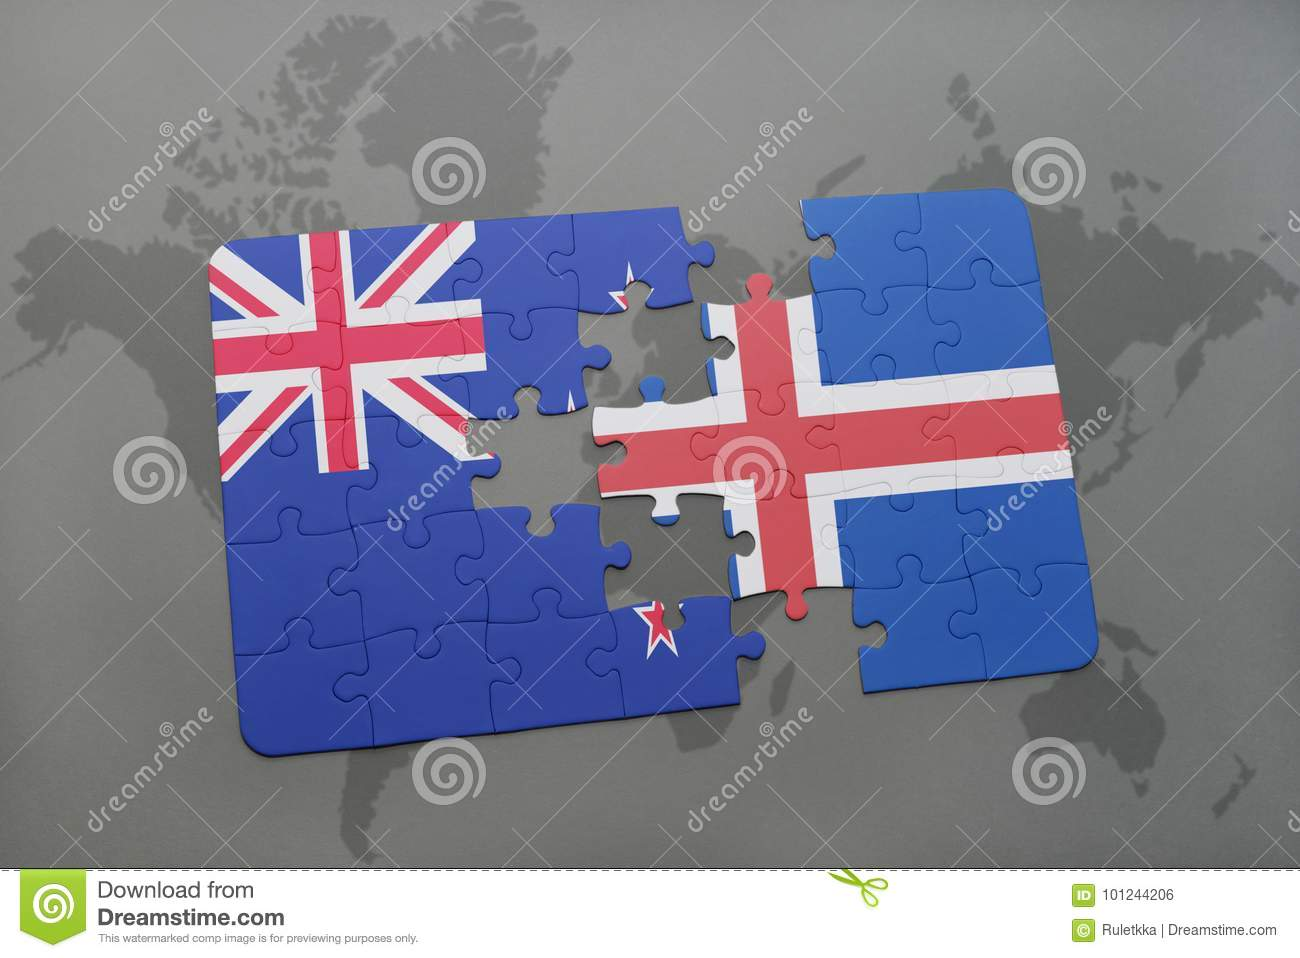 Puzzle with the national flag of new zealand and iceland on a world puzzle with the national flag of new zealand and iceland on a world map background stock photo image of against concept 101244206 gumiabroncs Choice Image